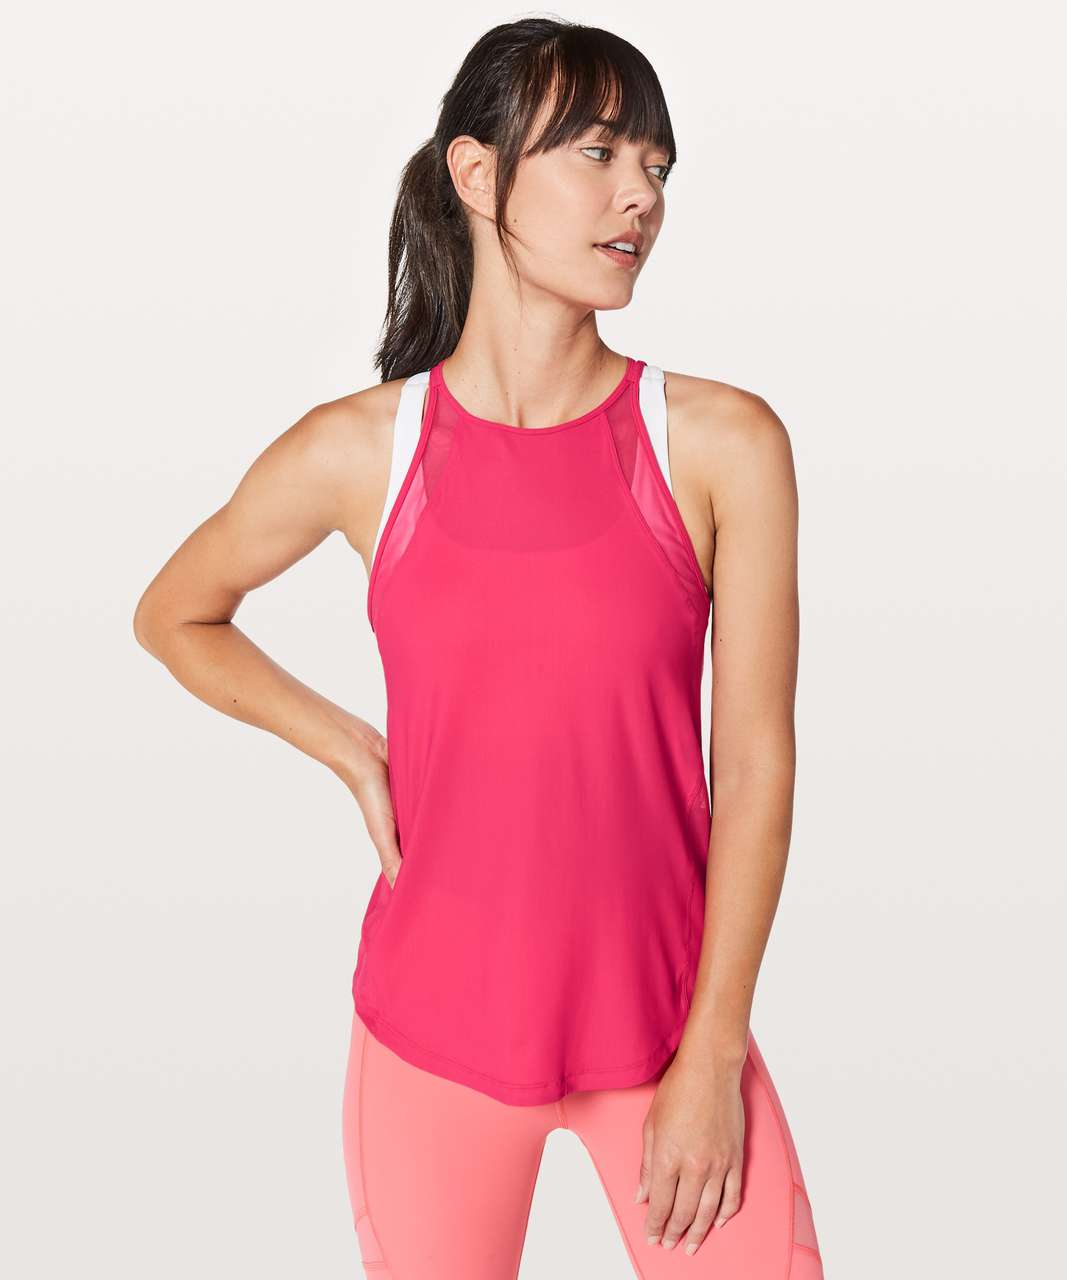 Lululemon Run Off-Route Tank - Fuchsia Pink